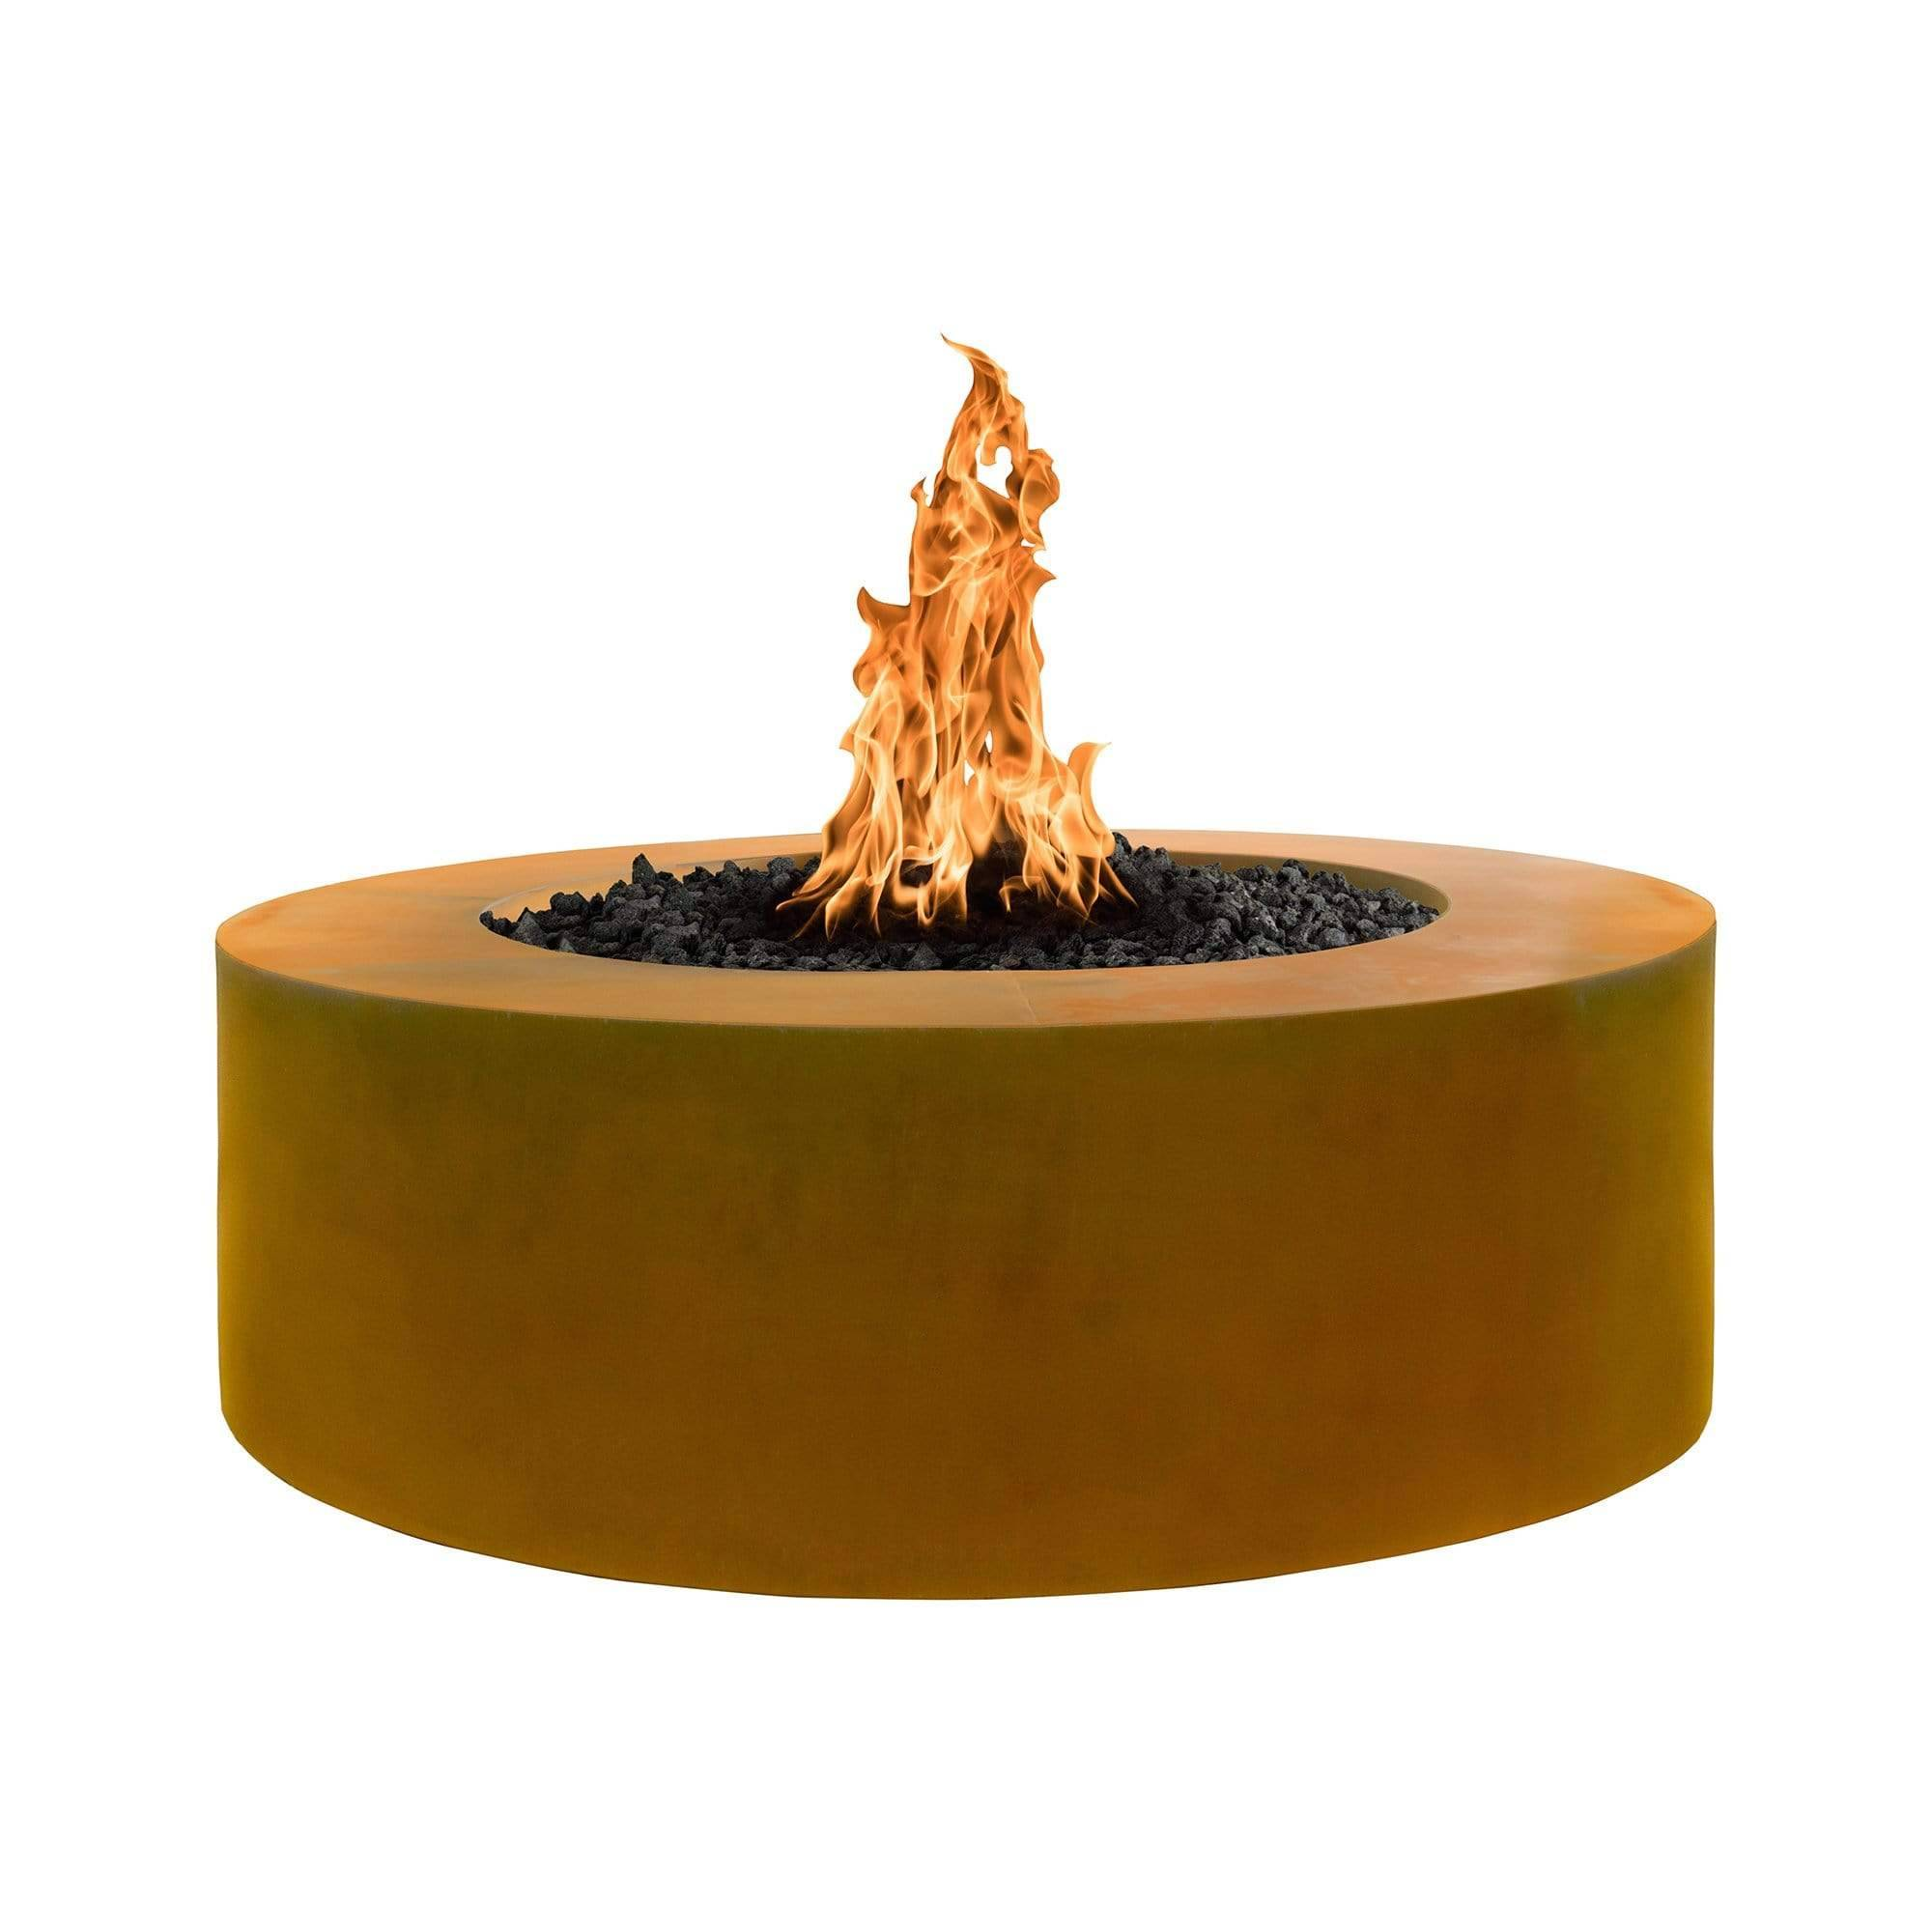 The Outdoor Plus Unity Metal Fire Pit OPT-UNYCP60 Fire Pit The Outdoor Plus